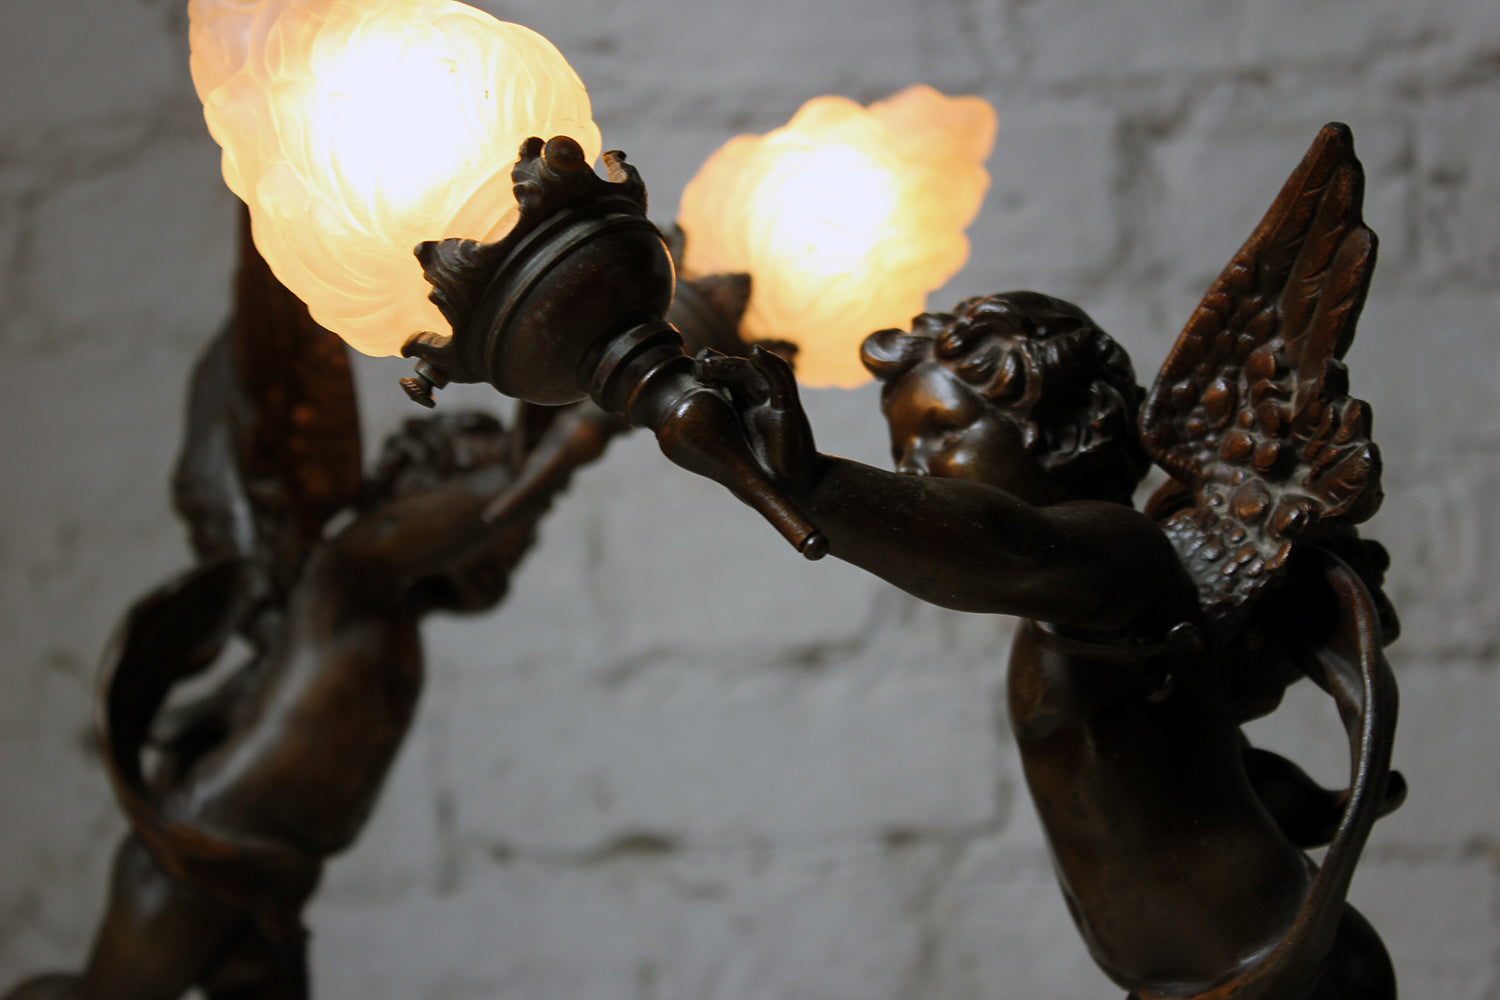 After Emile Bruchon (1806-1895); 'L'Amour Vainquer' & 'L'Amour Vagabond'; An Attractive Pair of French Spelter & Marble Table Lamps Modelled as Winged Cherubs c.1915